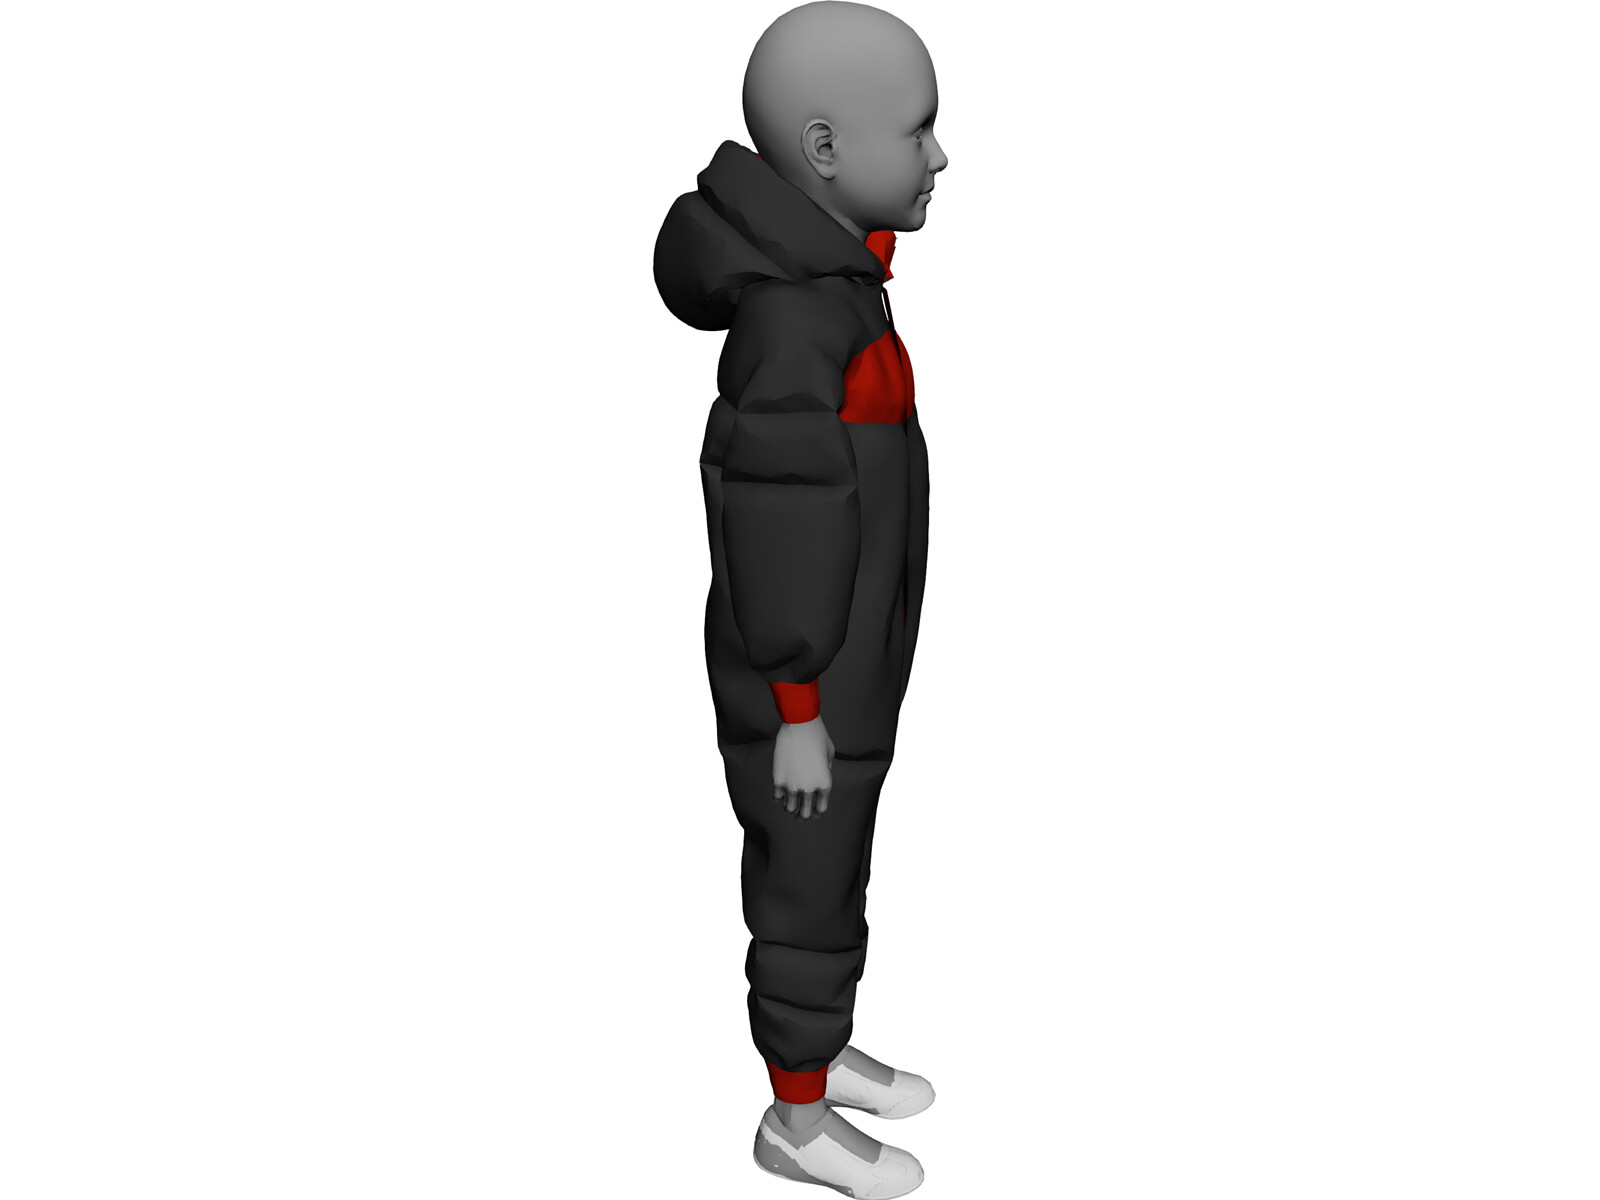 Mannequin Child 3D Model